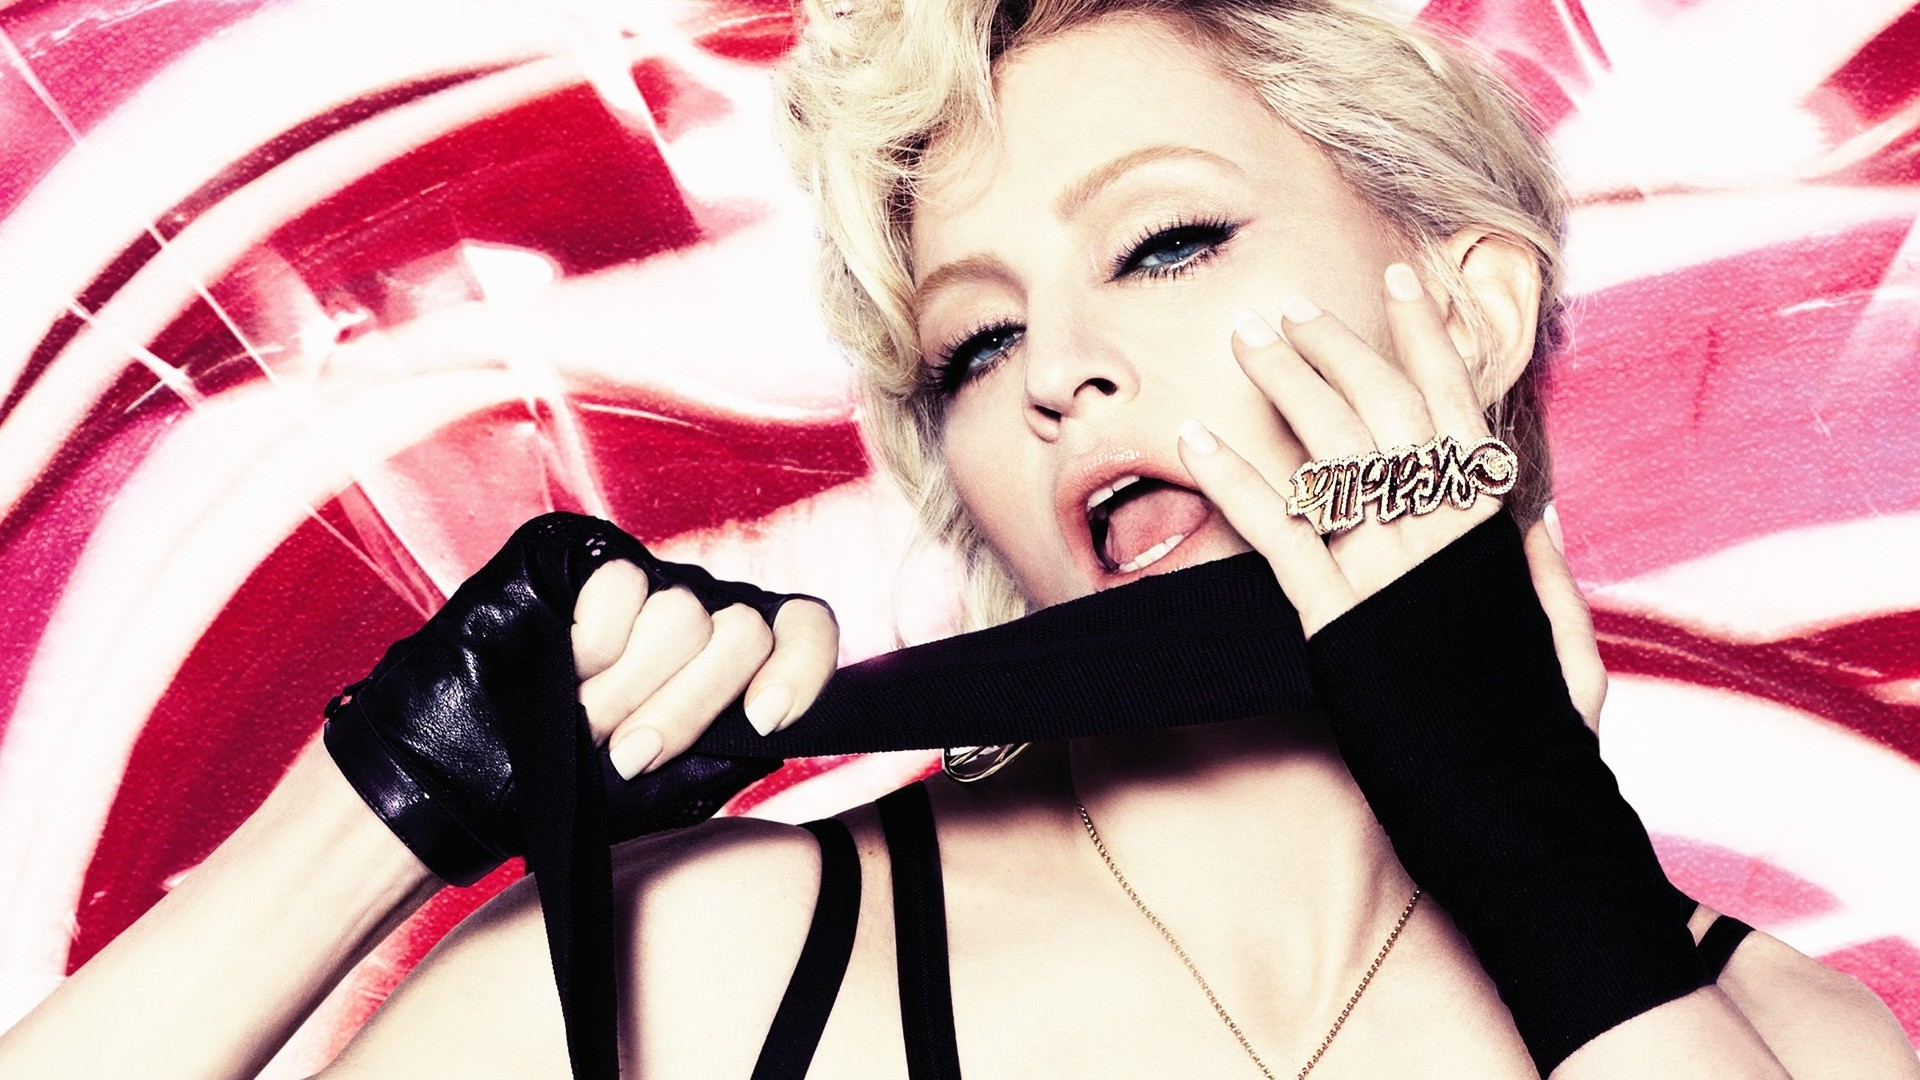 Madonna hd wallpapers wallpaper high definition high quality widescreen - Madonna hd images ...